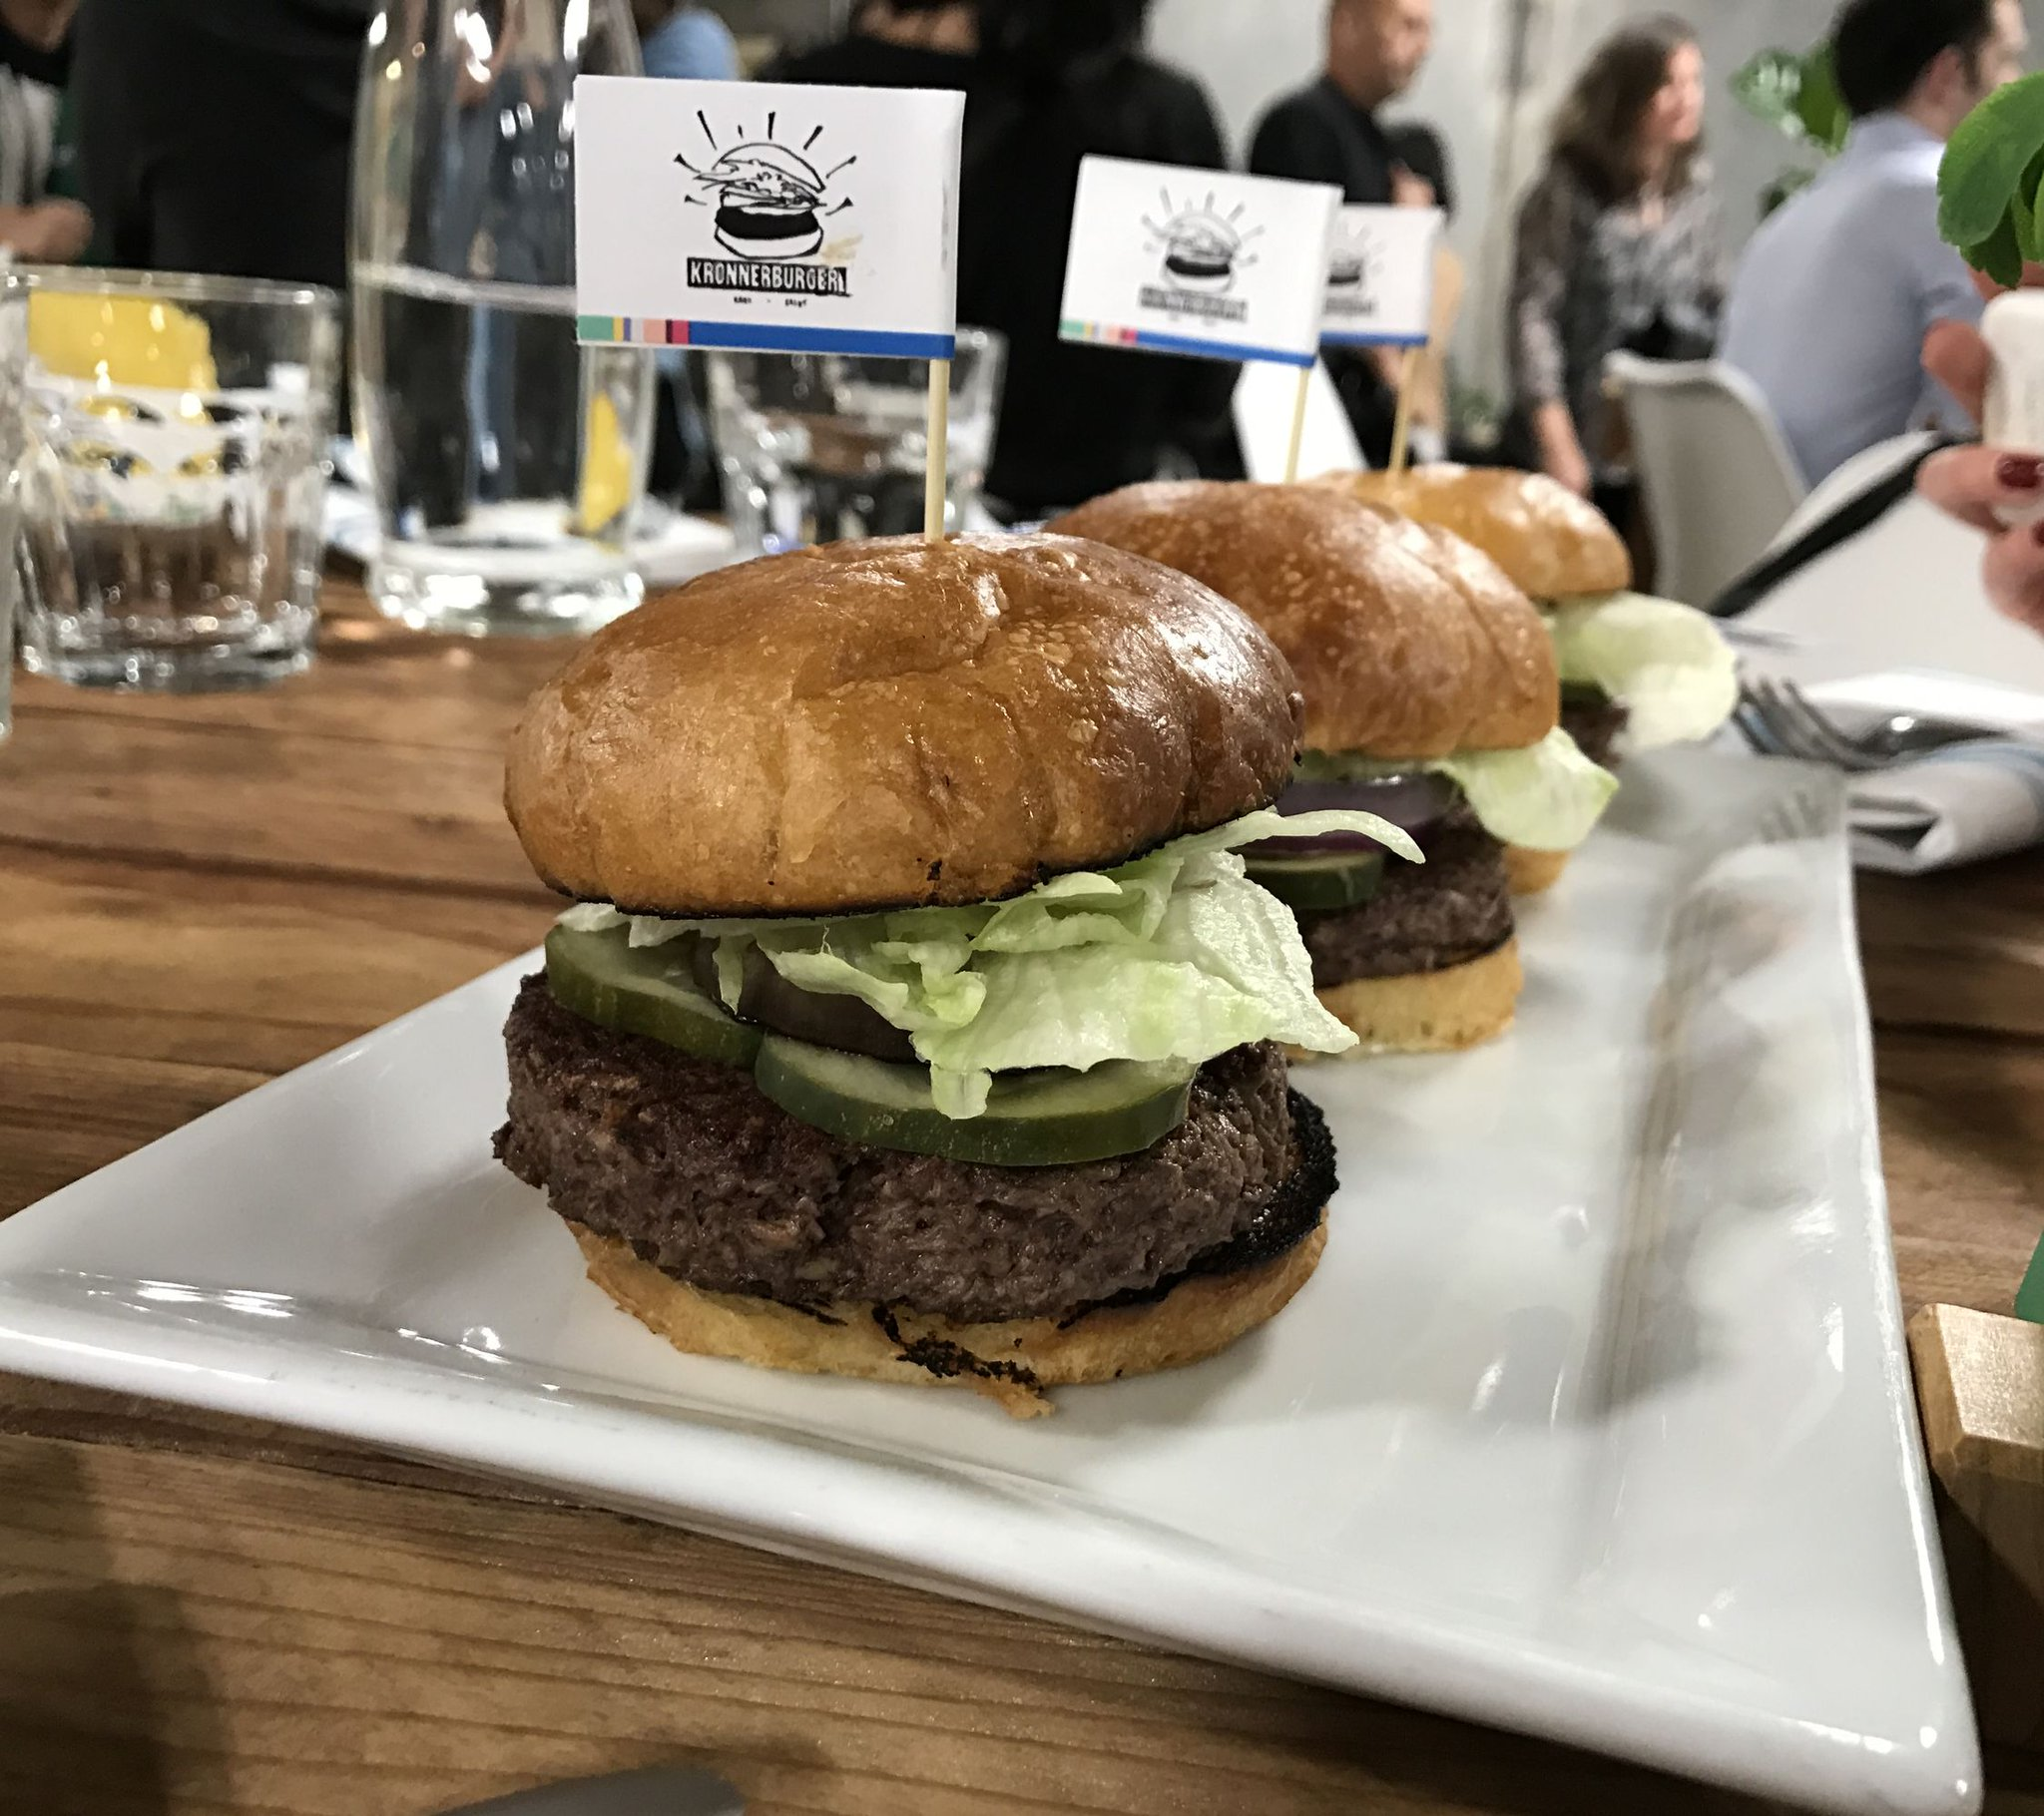 Impossible Foods plans meatless world domination with new Oakland production facility https://t.co/kvYc2q60Z2 https://t.co/Lf2G82W0ZJ